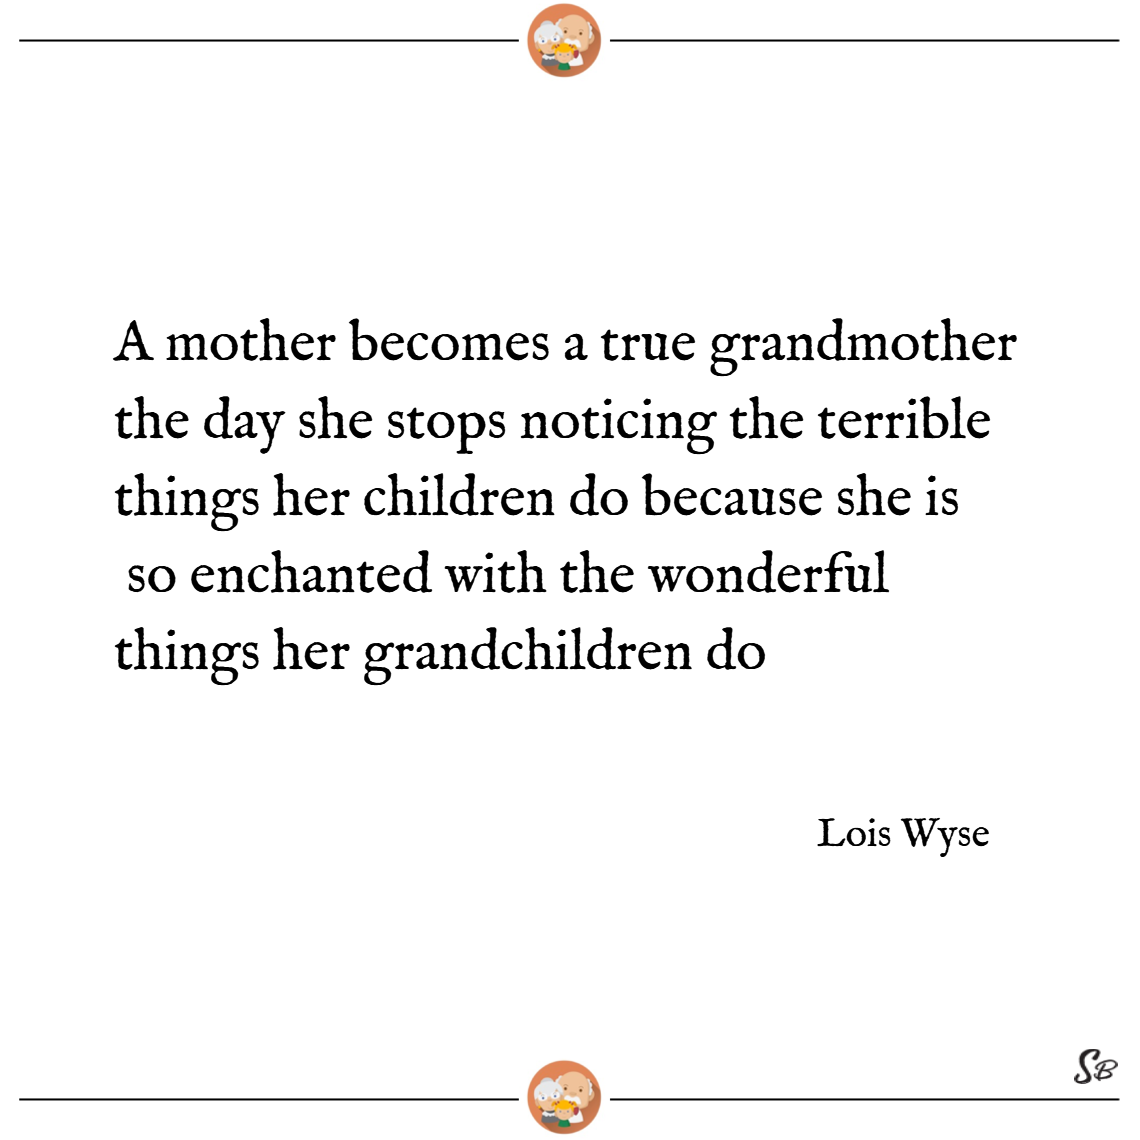 A mother becomes a true grandmother the day she stops noticing the terrible things her children do because she is so enchanted with the wonderful things her grandchildren do. lois wyse